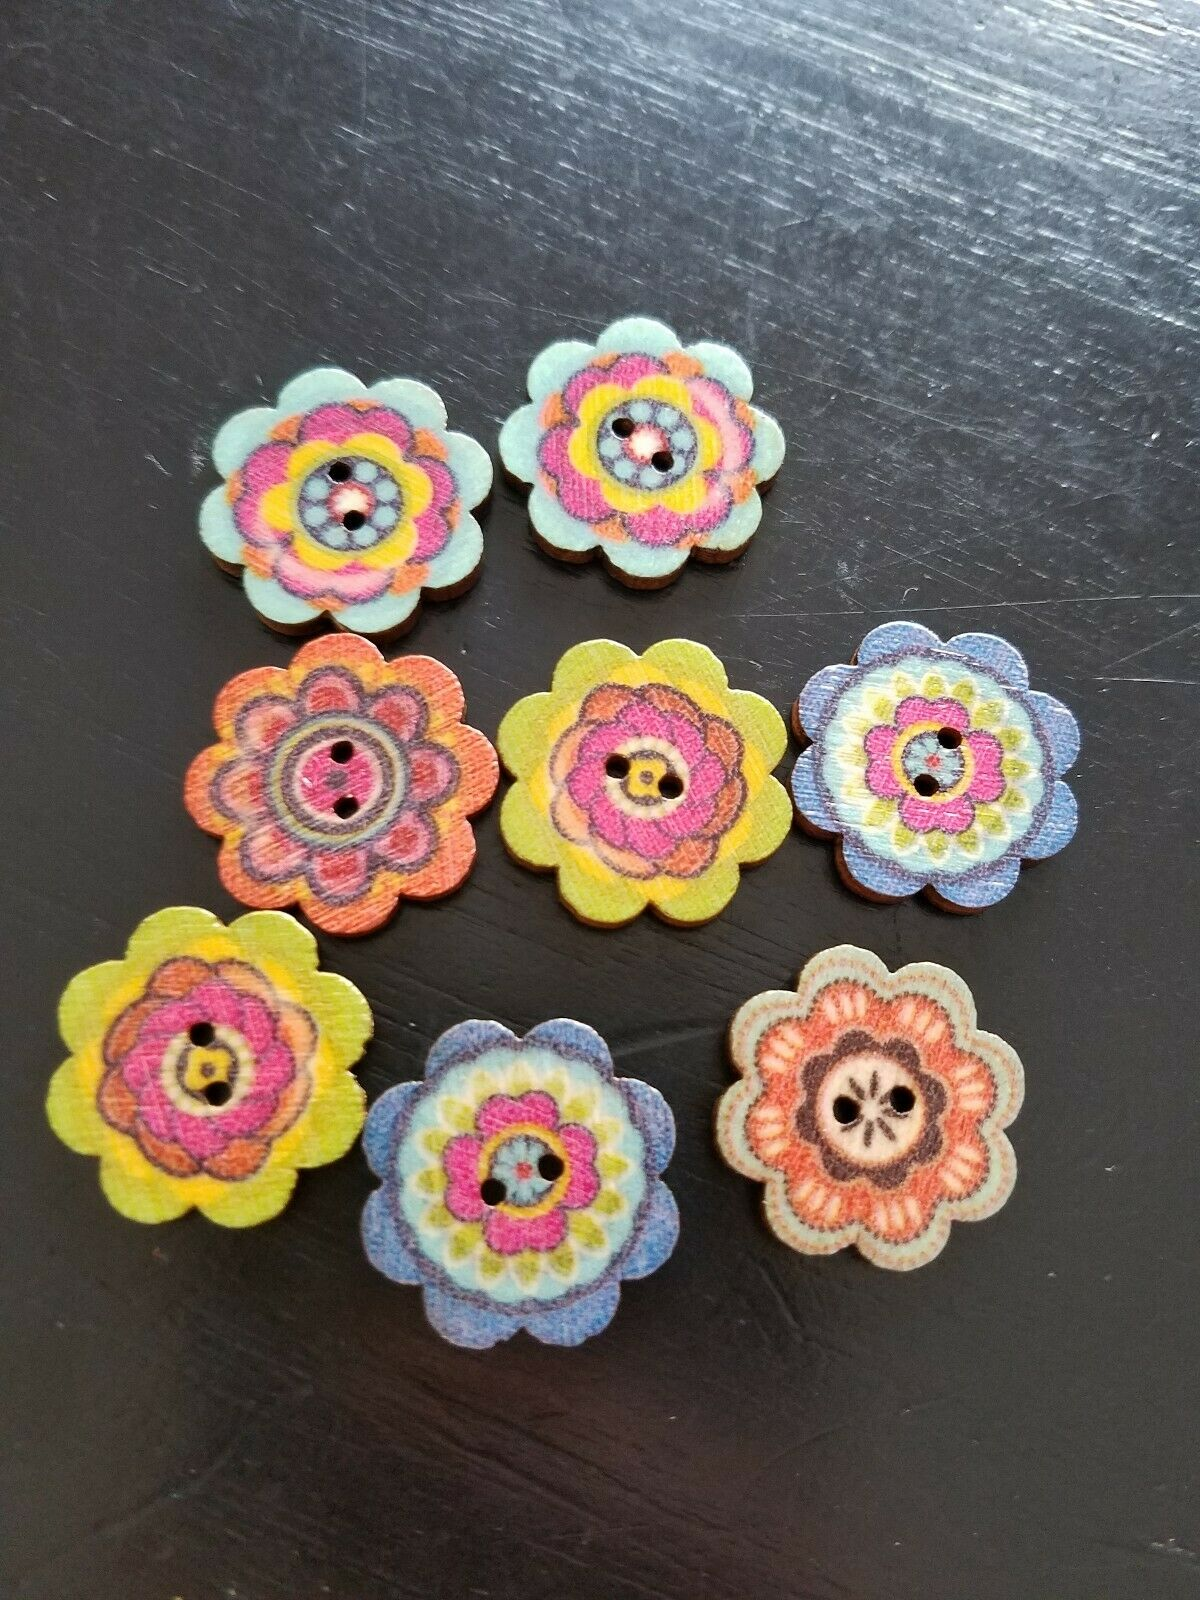 4 pcs Yorkshire Terrier Dog Novelty Buttons Sewing Crafting Card Making Quilting